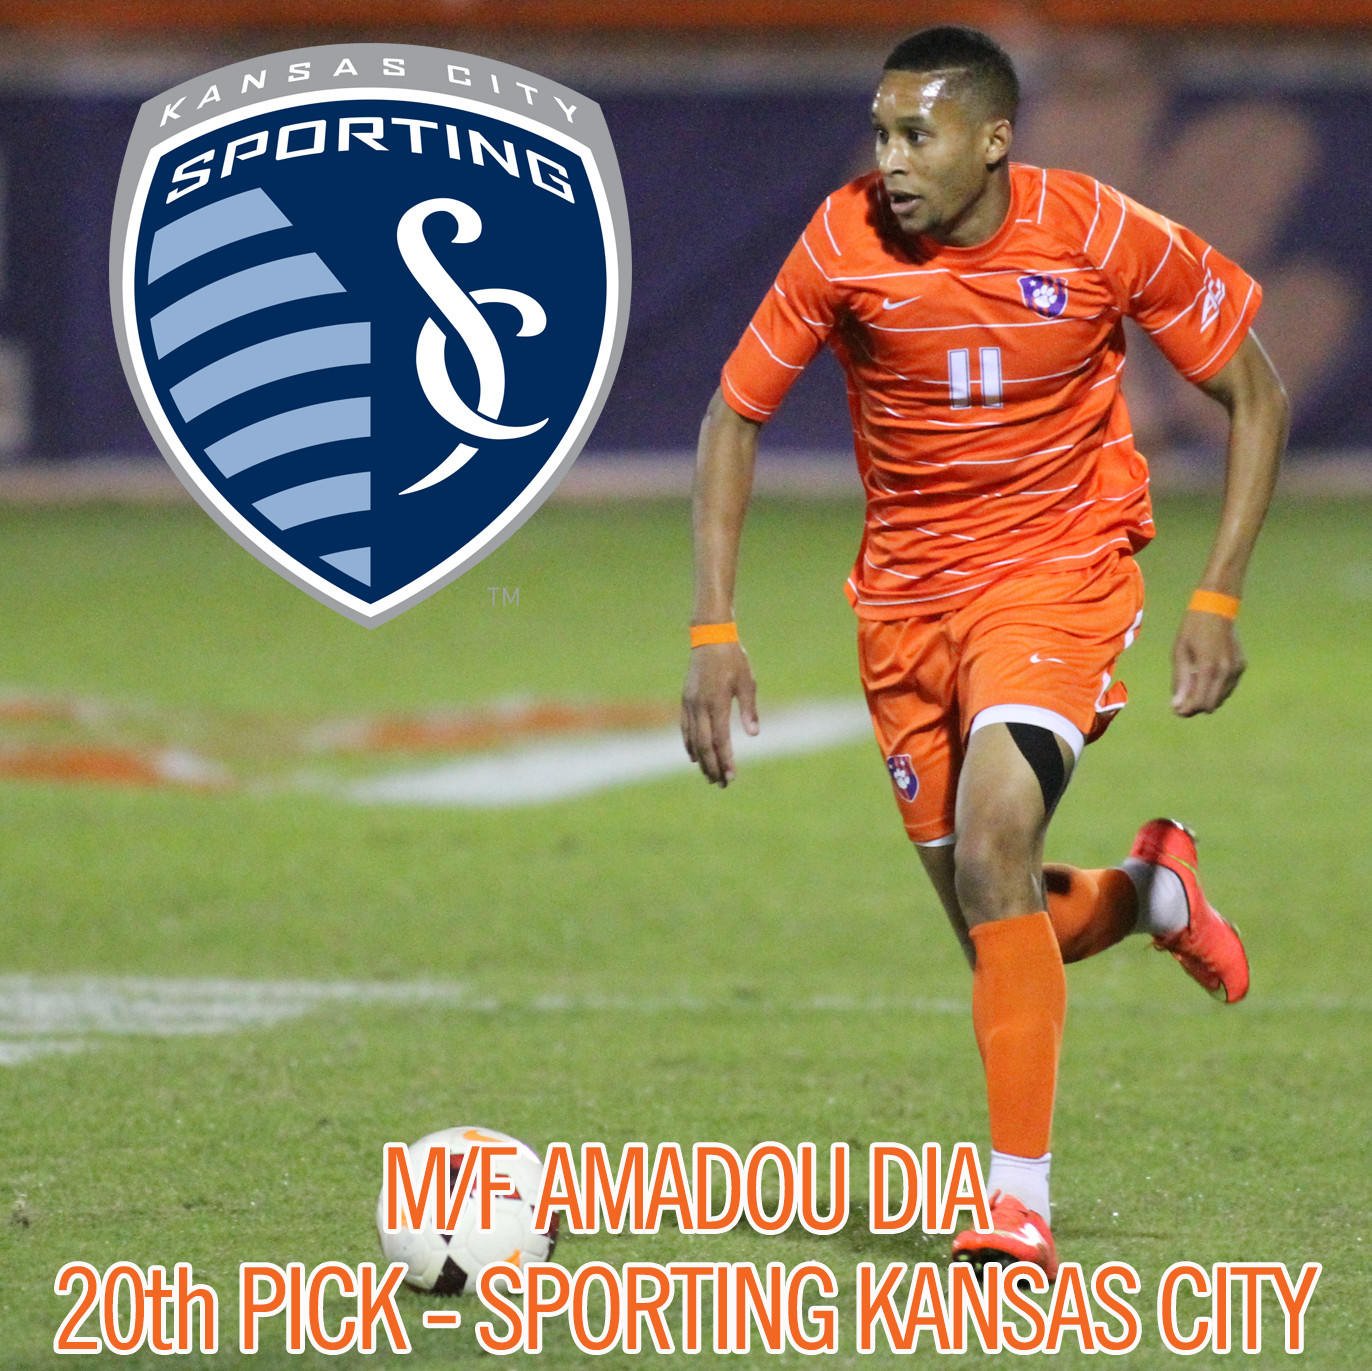 Clemson?s Amadou Dia Selected by Sporting KC in First Round of MLS Draft